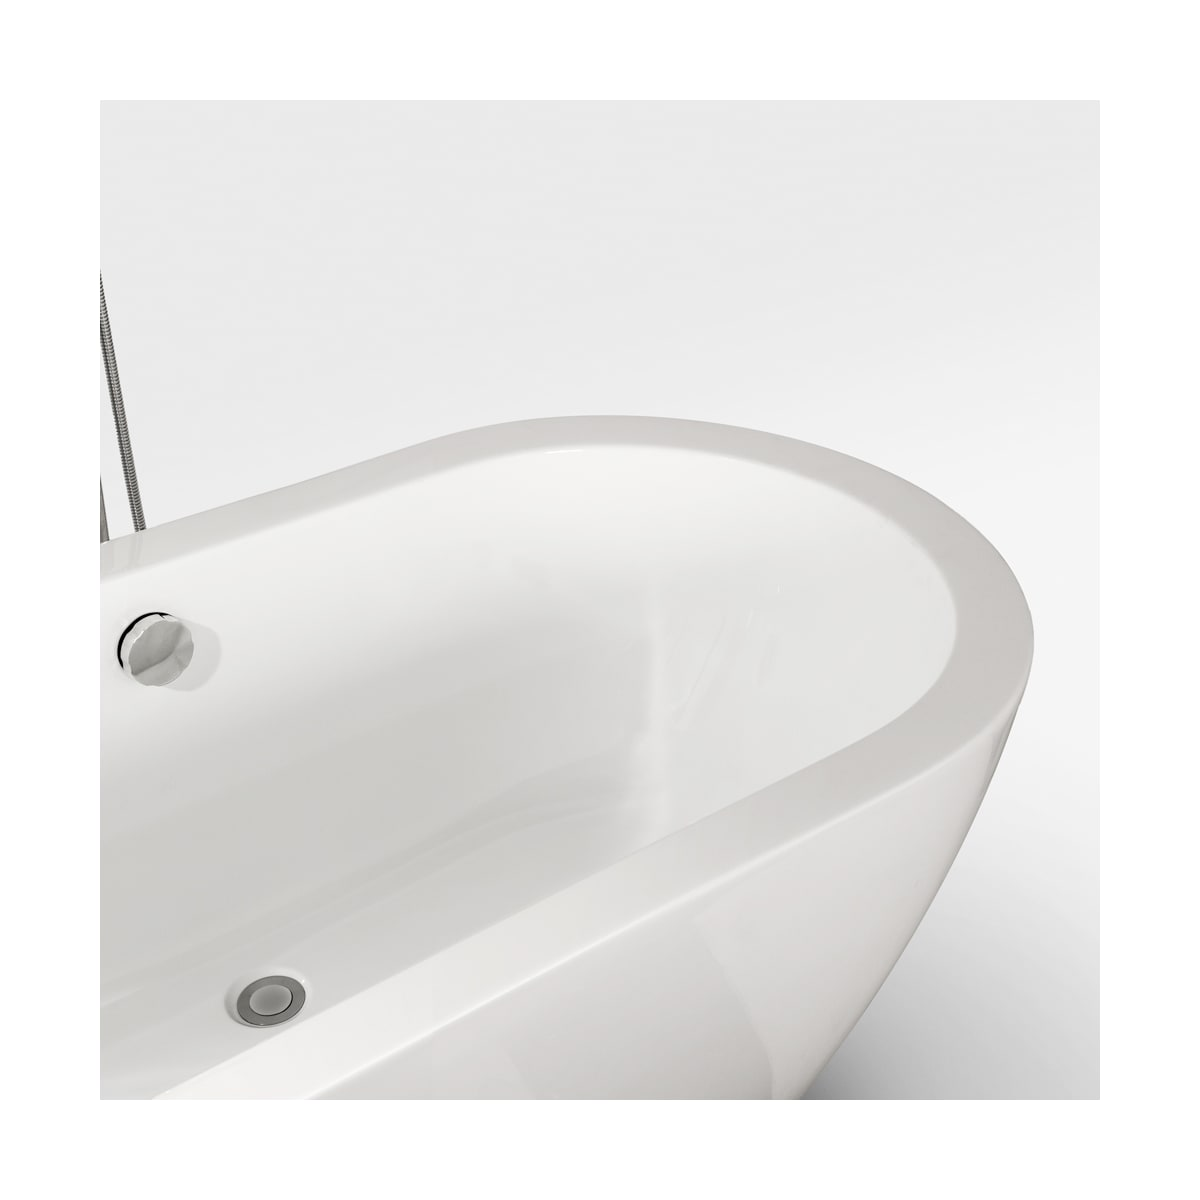 Wyndham Collection Soho 60 Inch Freestanding Bathtub - Bathtub Ideas